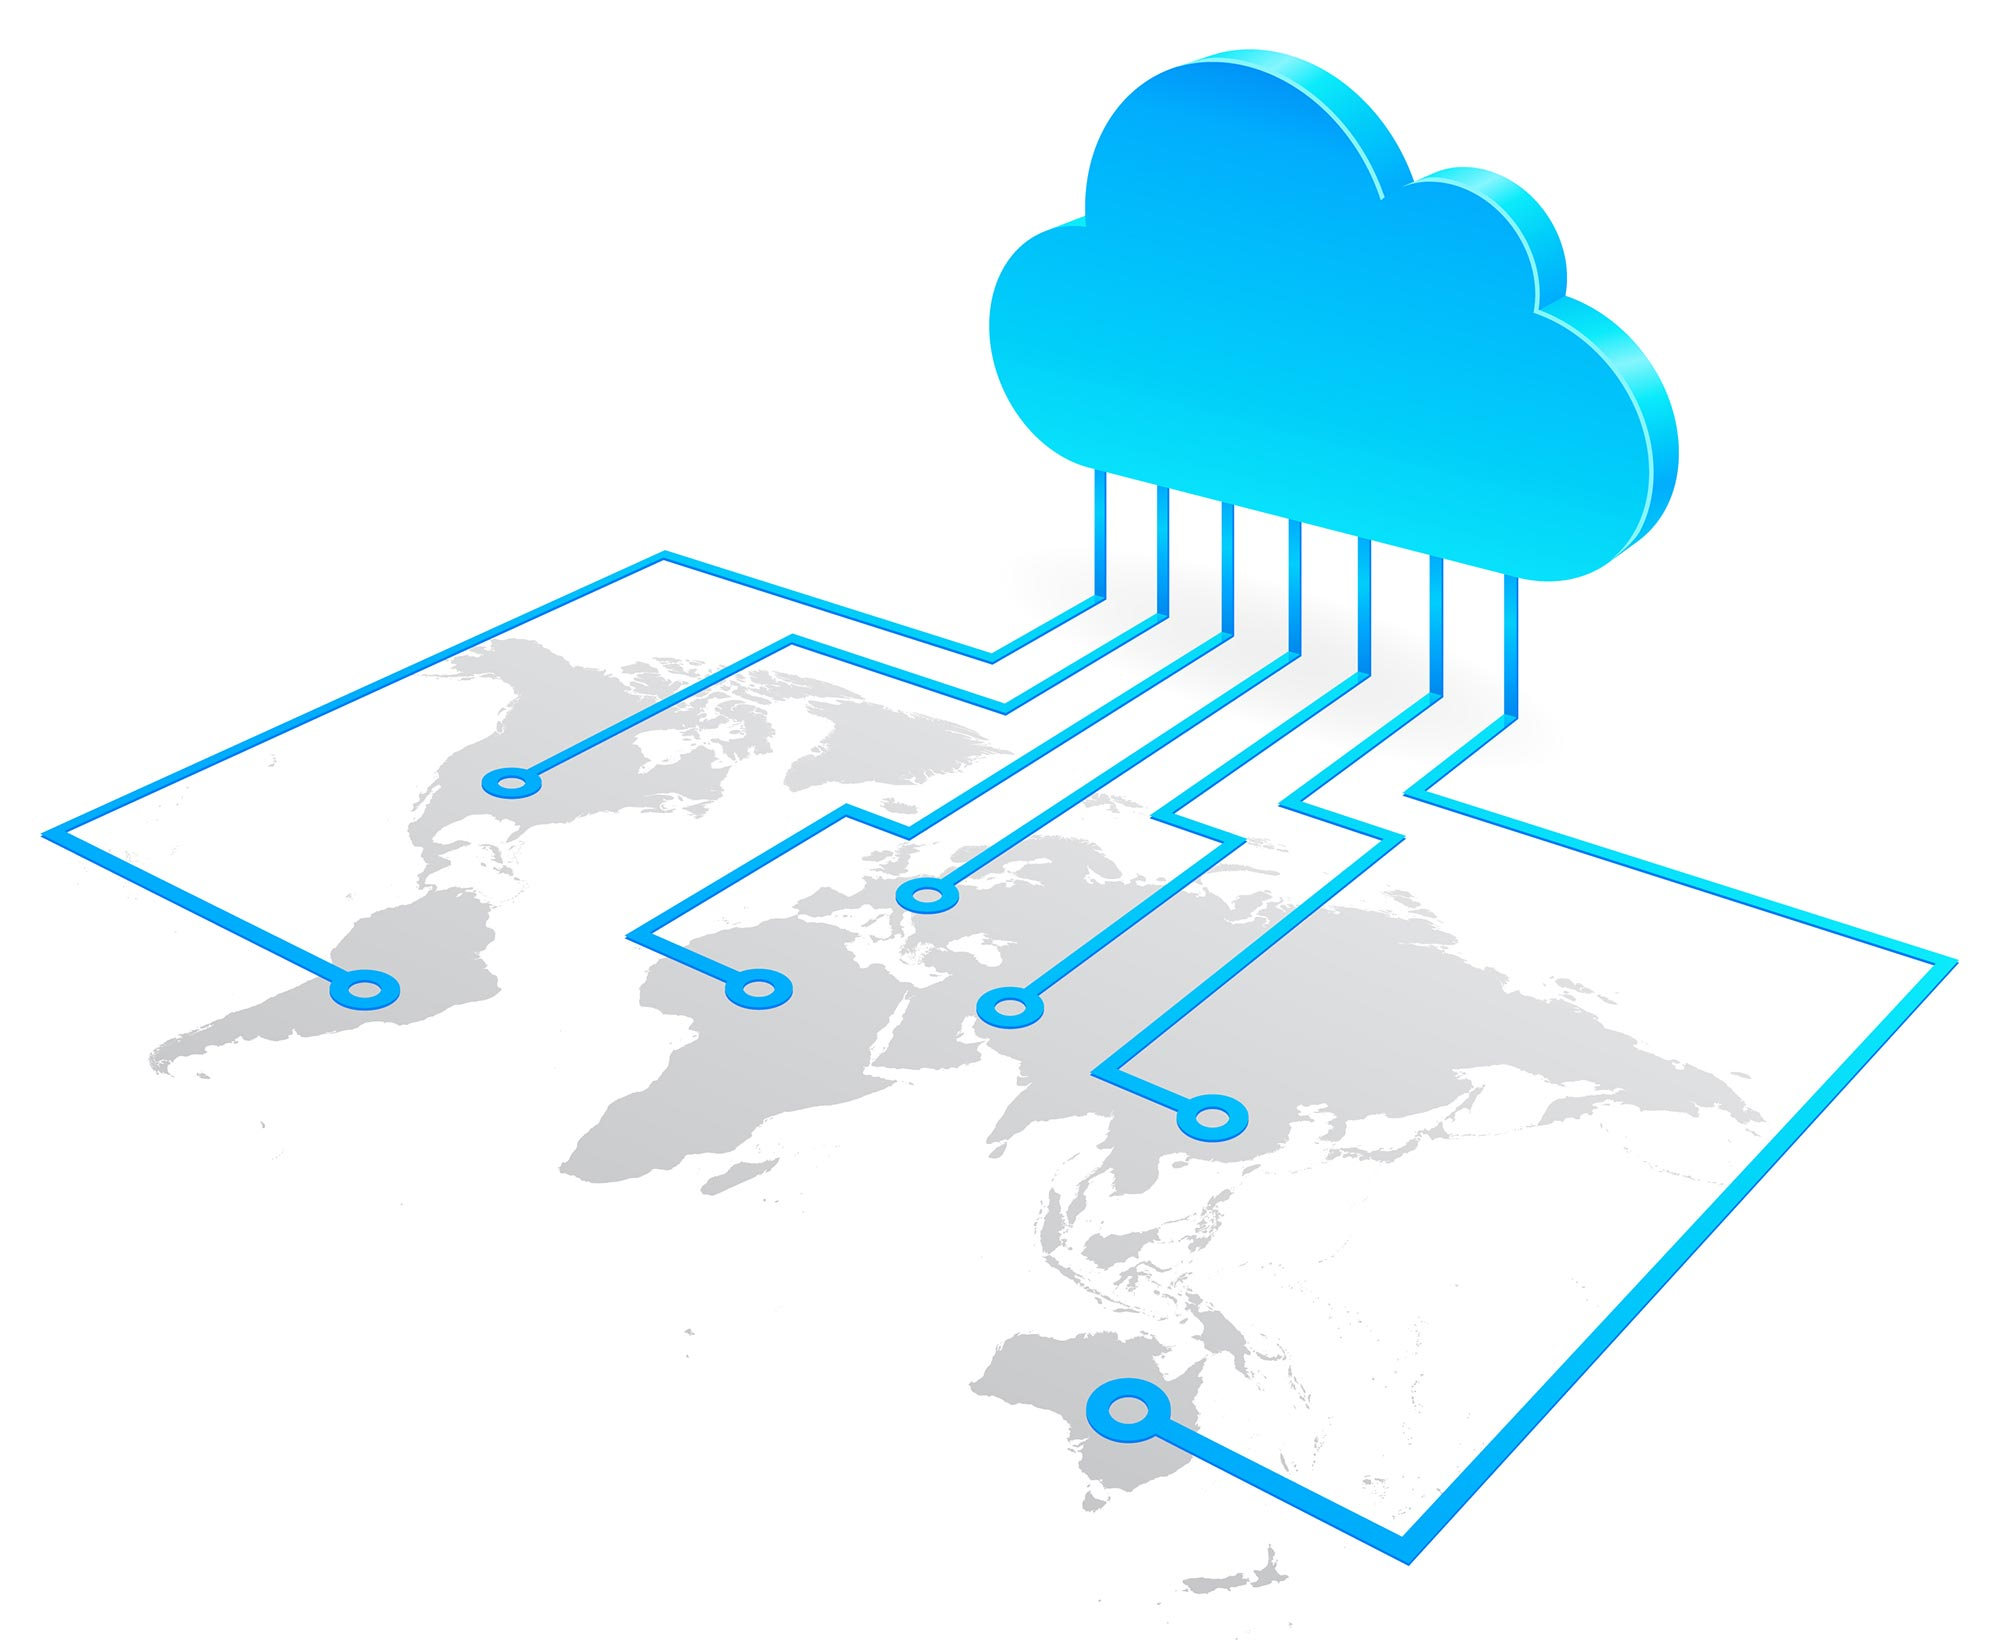 cloud-connected-to-global-network.jpg